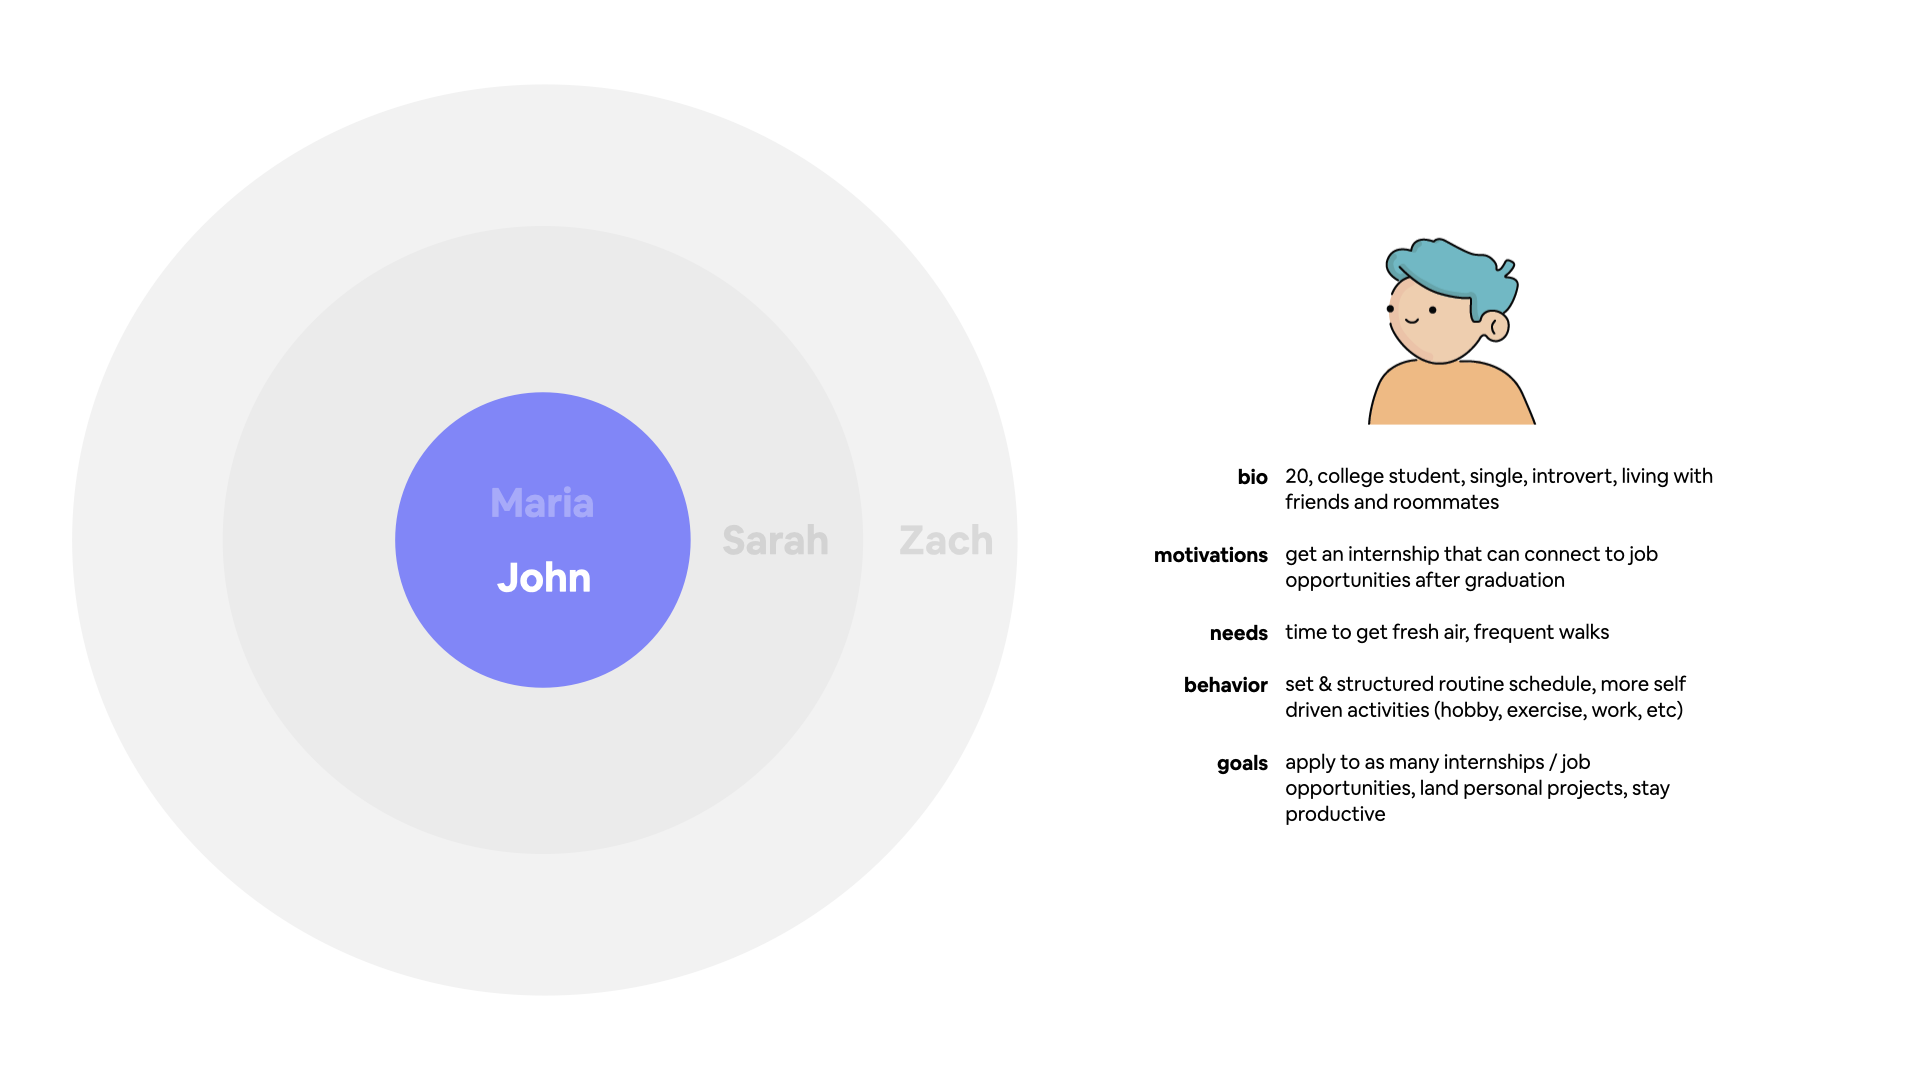 Primary persona graph for John, a 20 year old college student.